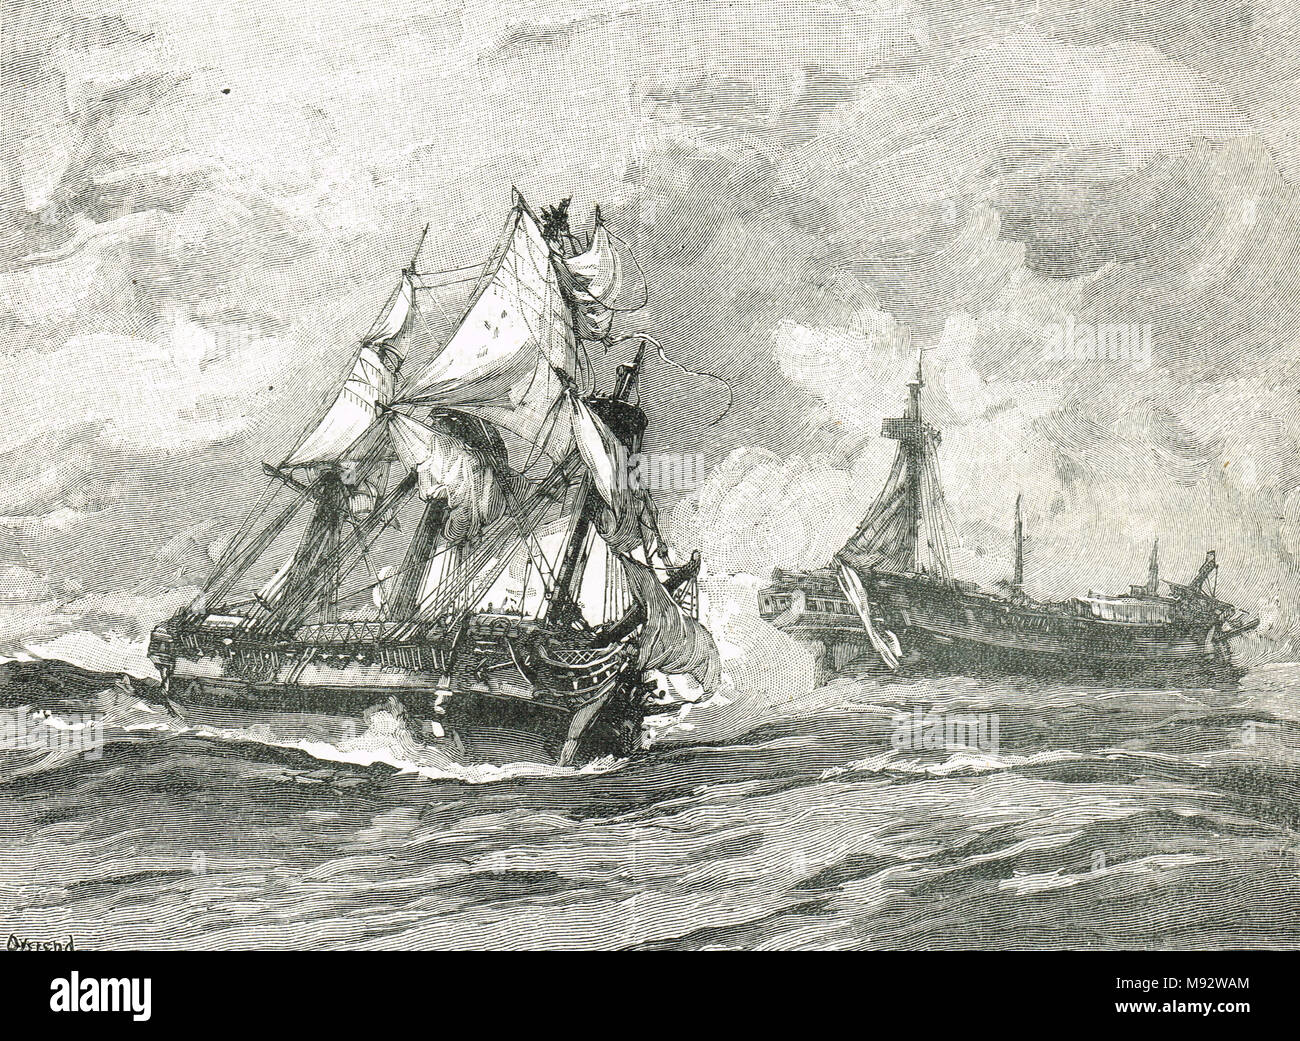 The Action of 17 June 1778, the Fight of Belle Poule and Arethusa - Stock Image